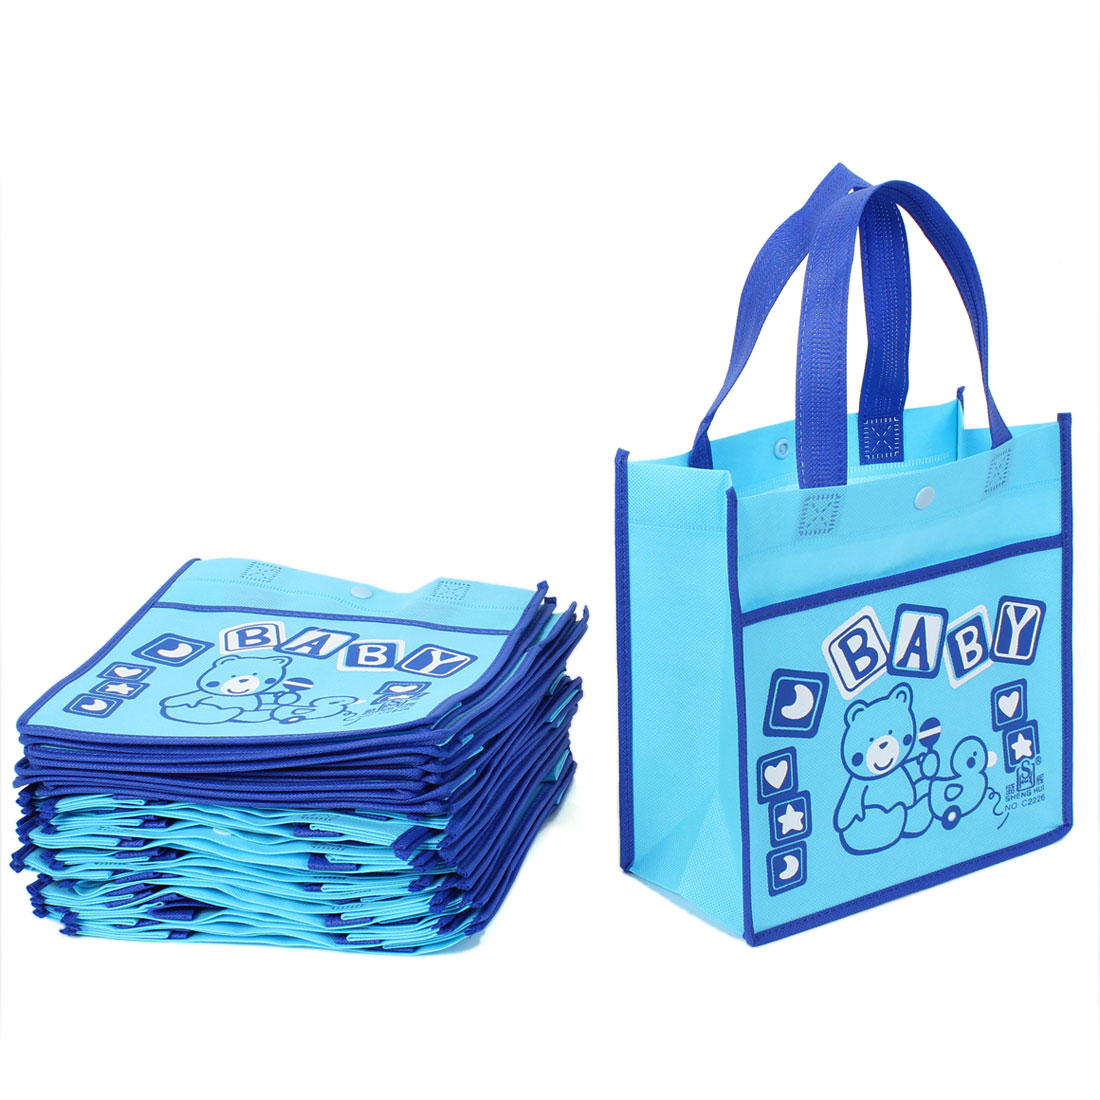 20pcs Cartoon Pattern Reusable Shopping Eco Non Woven Bags Tote 22 x 22cm